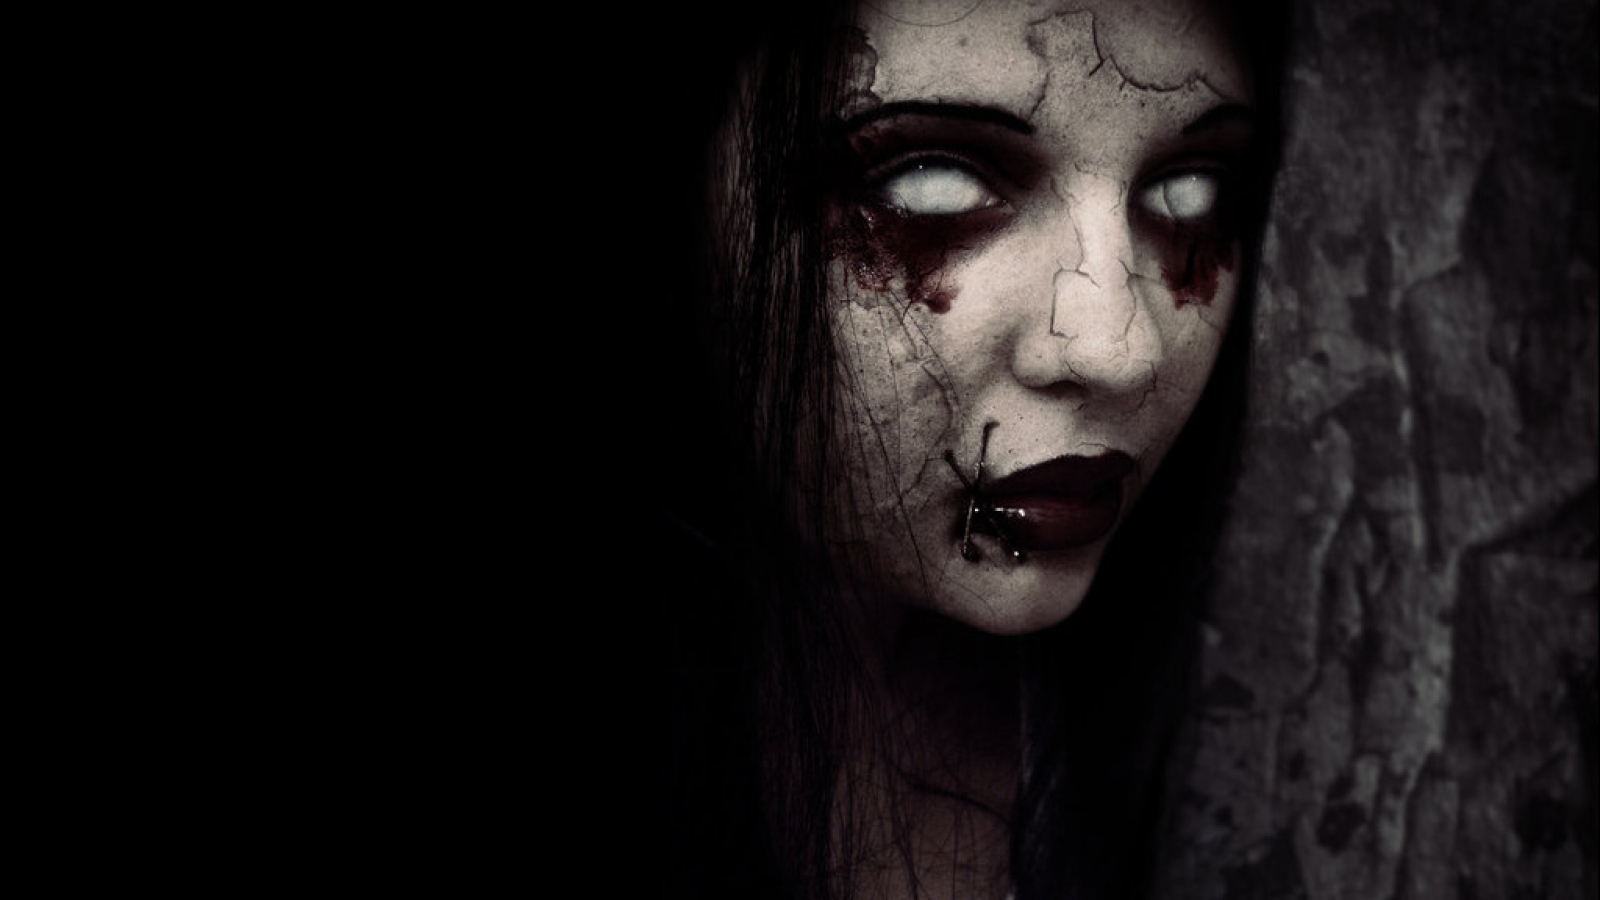 Creepy wallpaper and background image 1600x900 id 310768 for Creepy gothic pictures